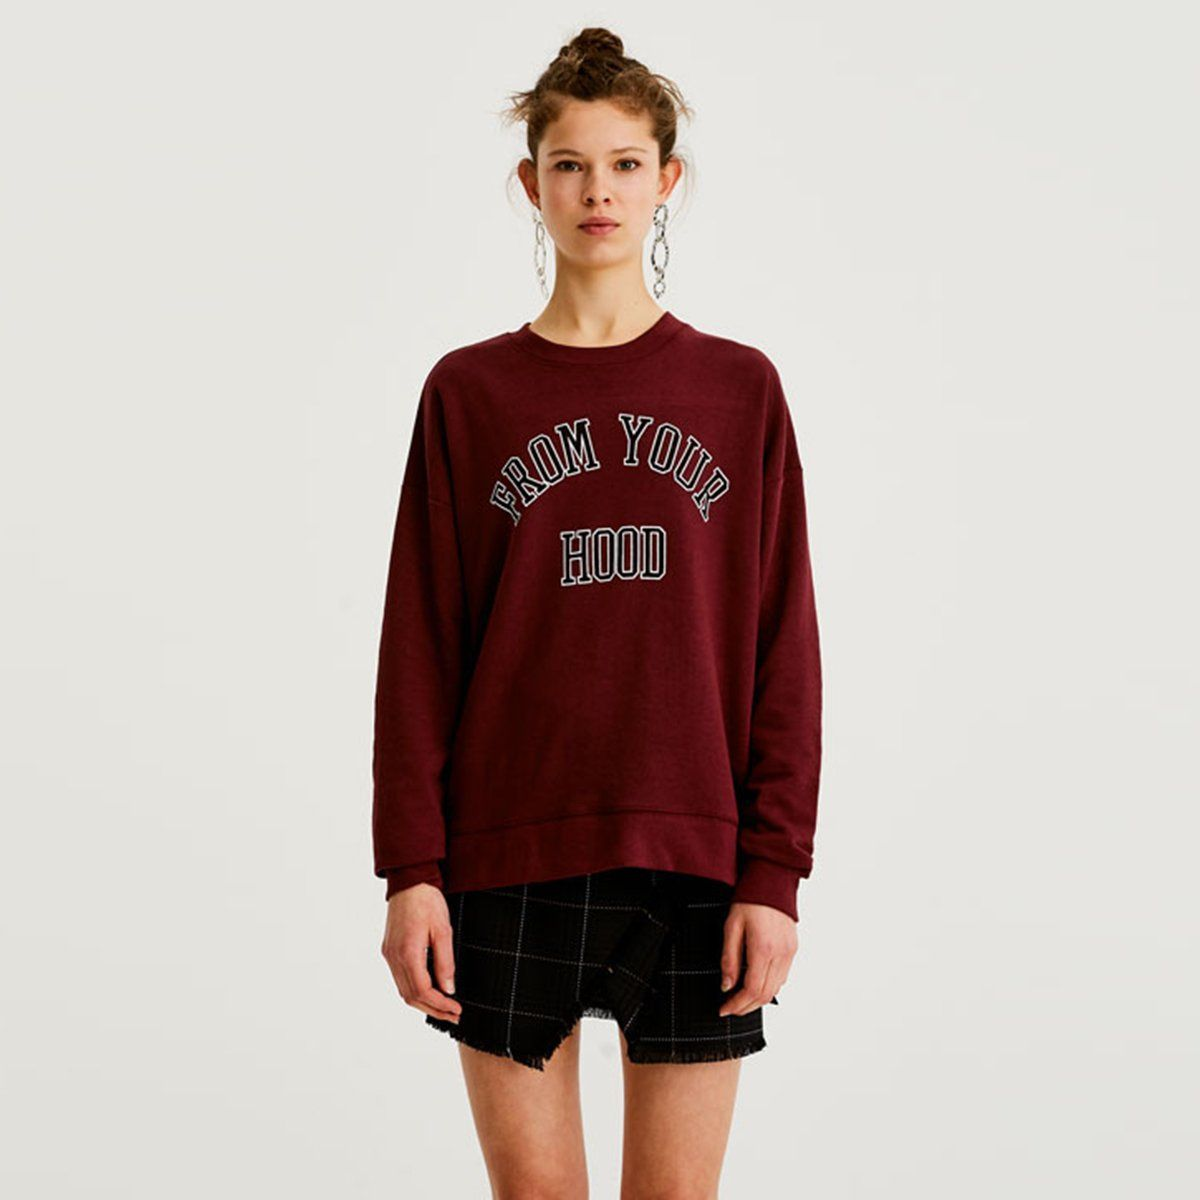 PULL & BEAR - From Your Hood Sweatshirt